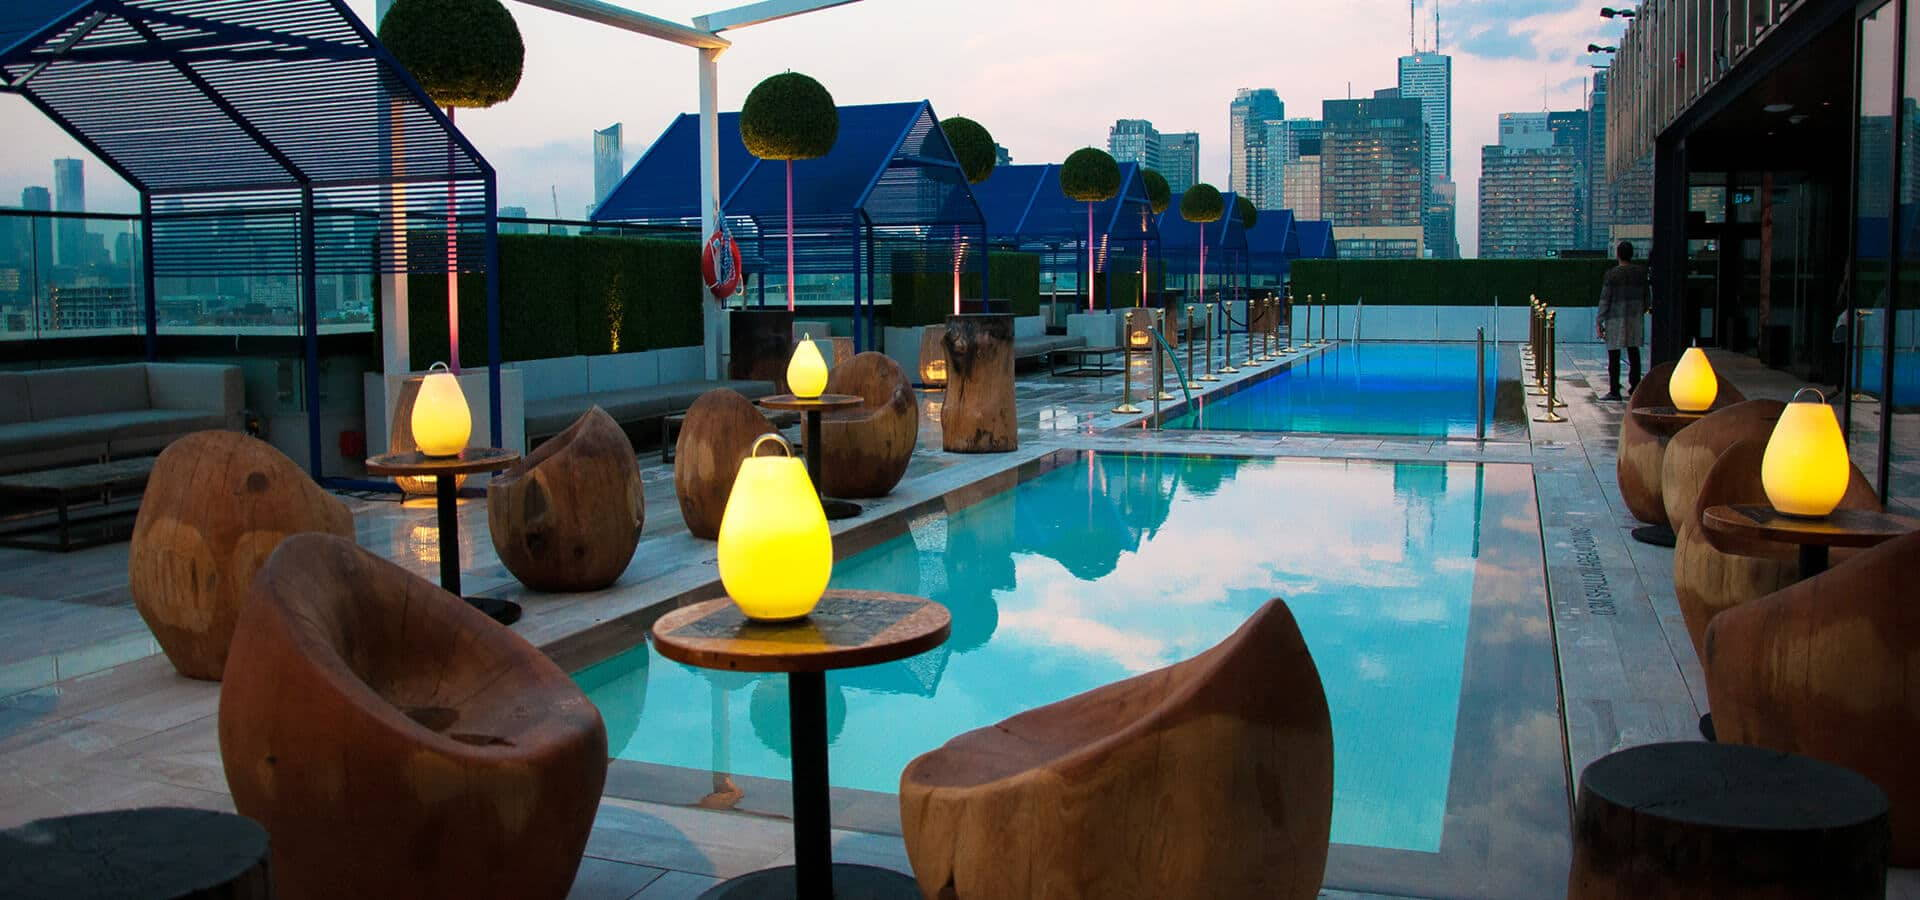 Hero image for EventSource's Definitive Patio Guide for Special Events in Toronto